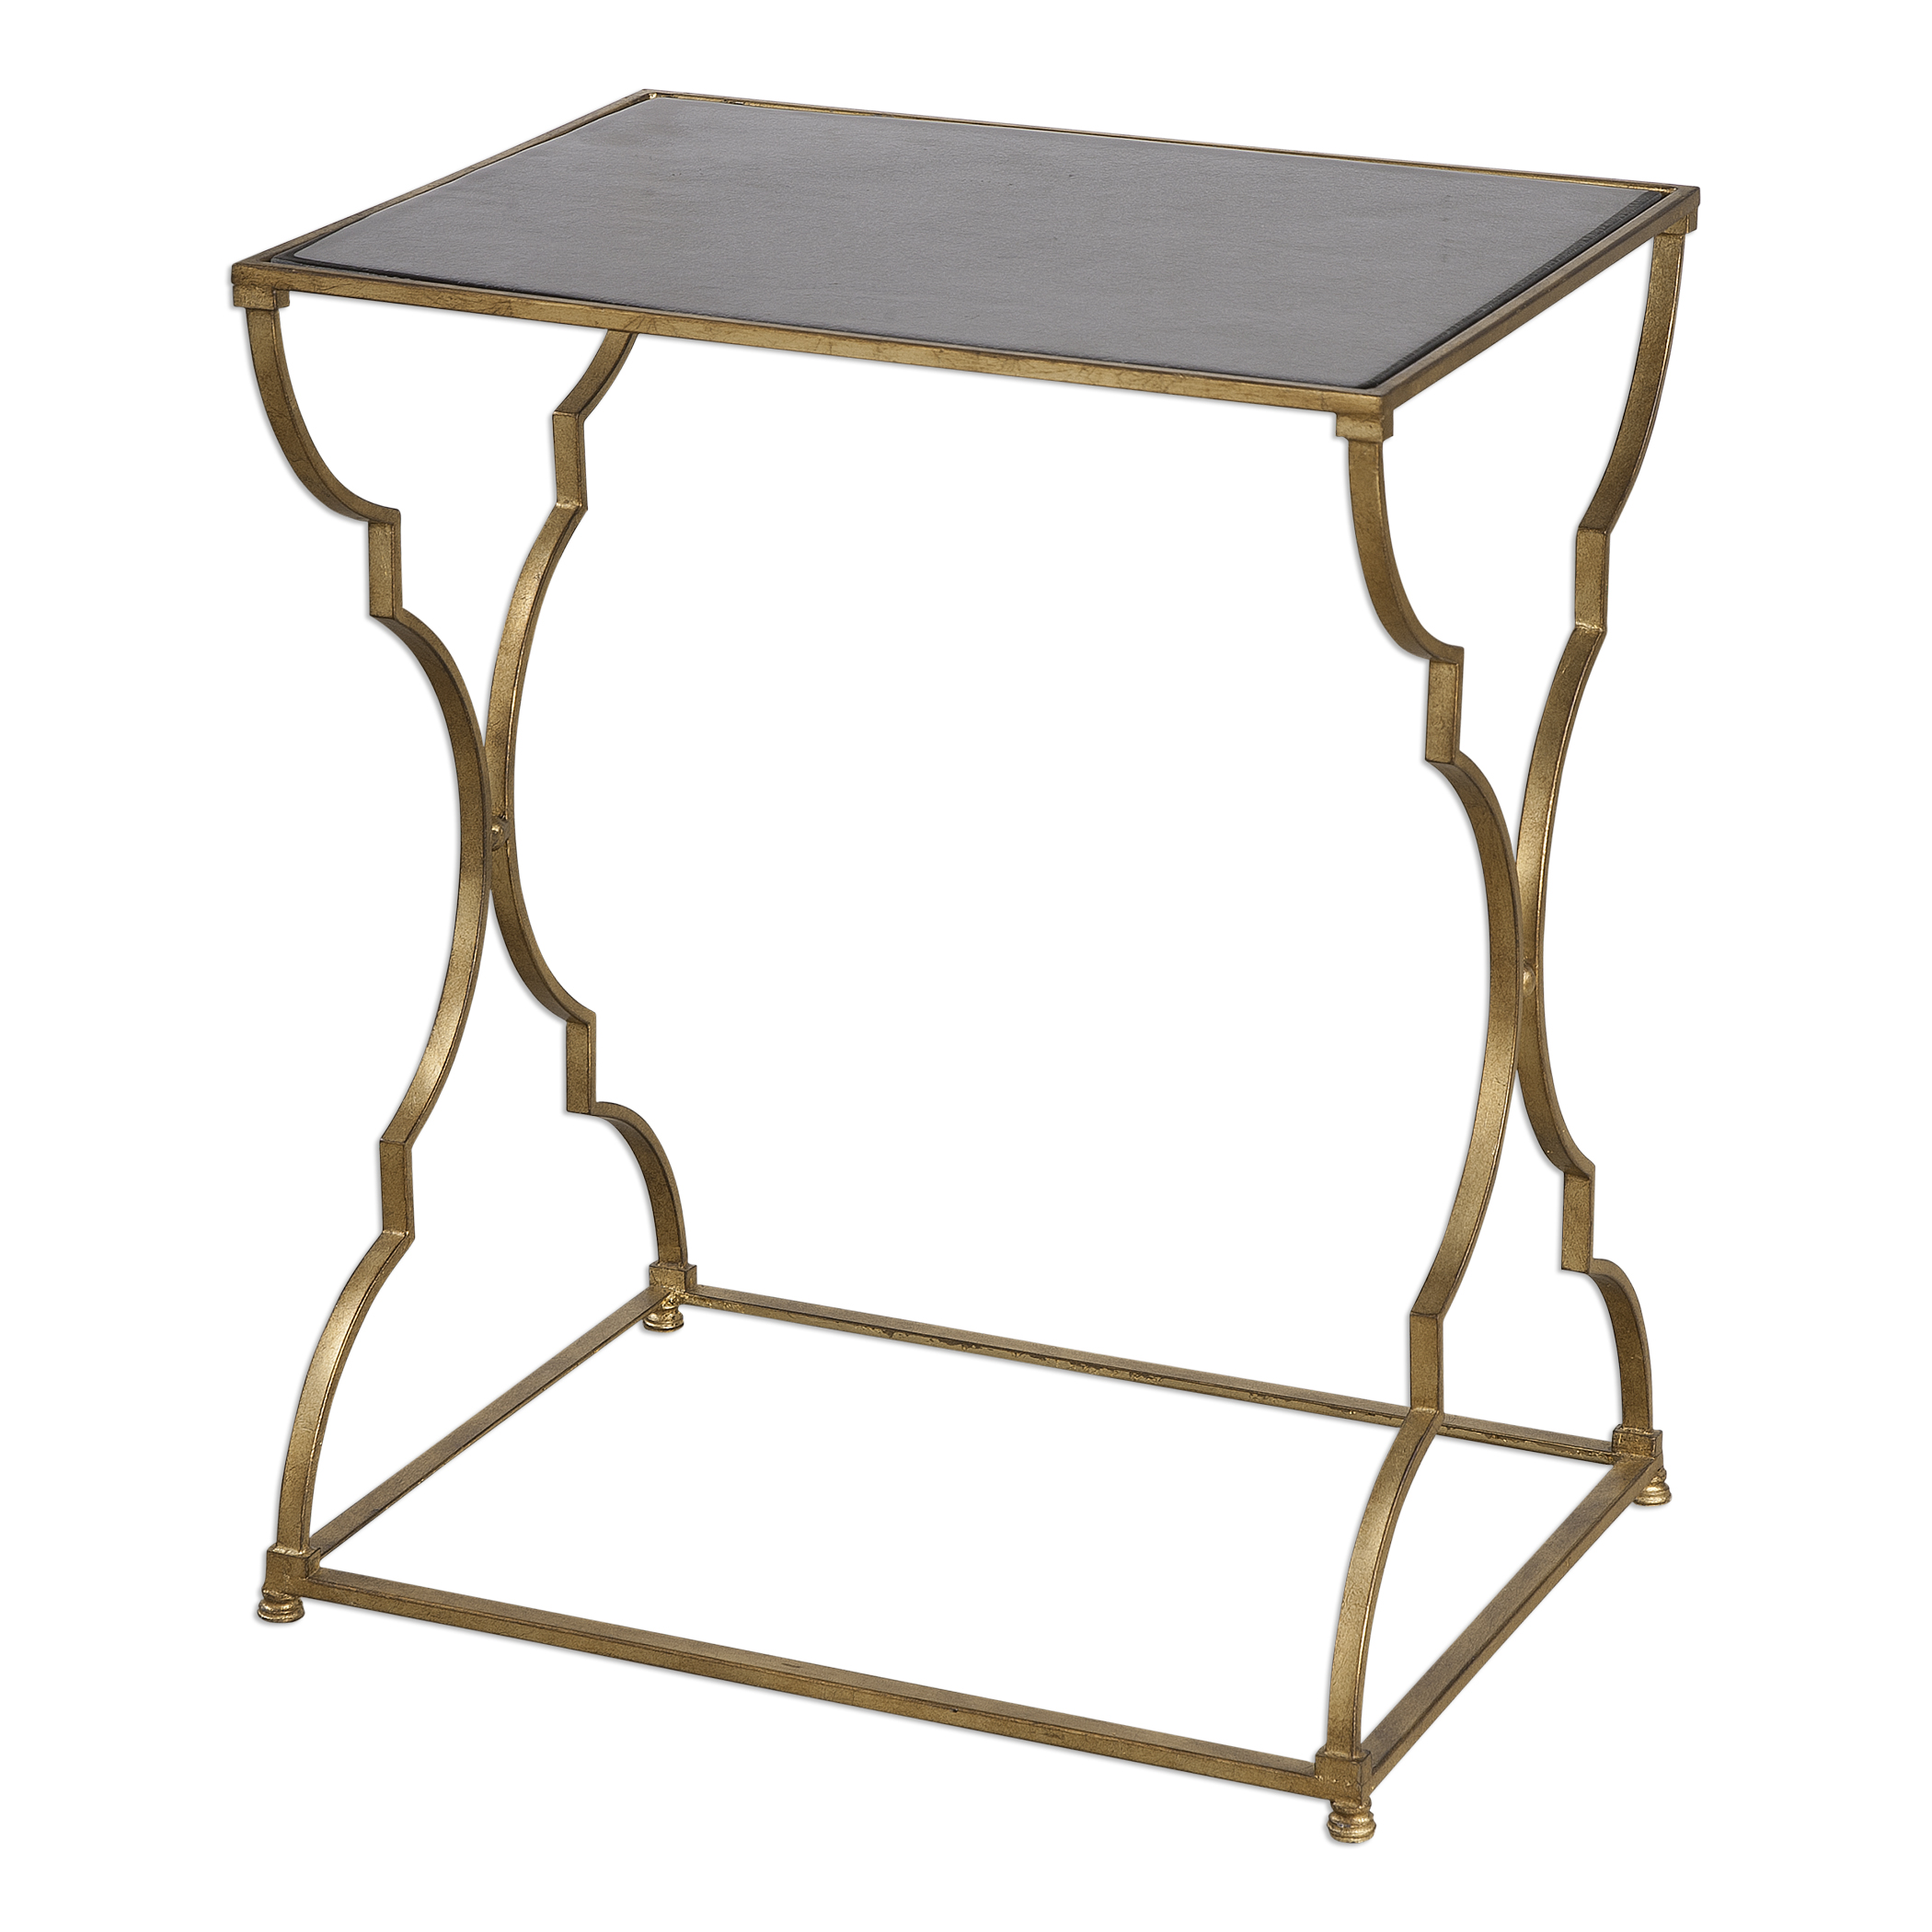 Uttermost Accent Furniture Caitland Antique Gold Accent Table - Item Number: 24632